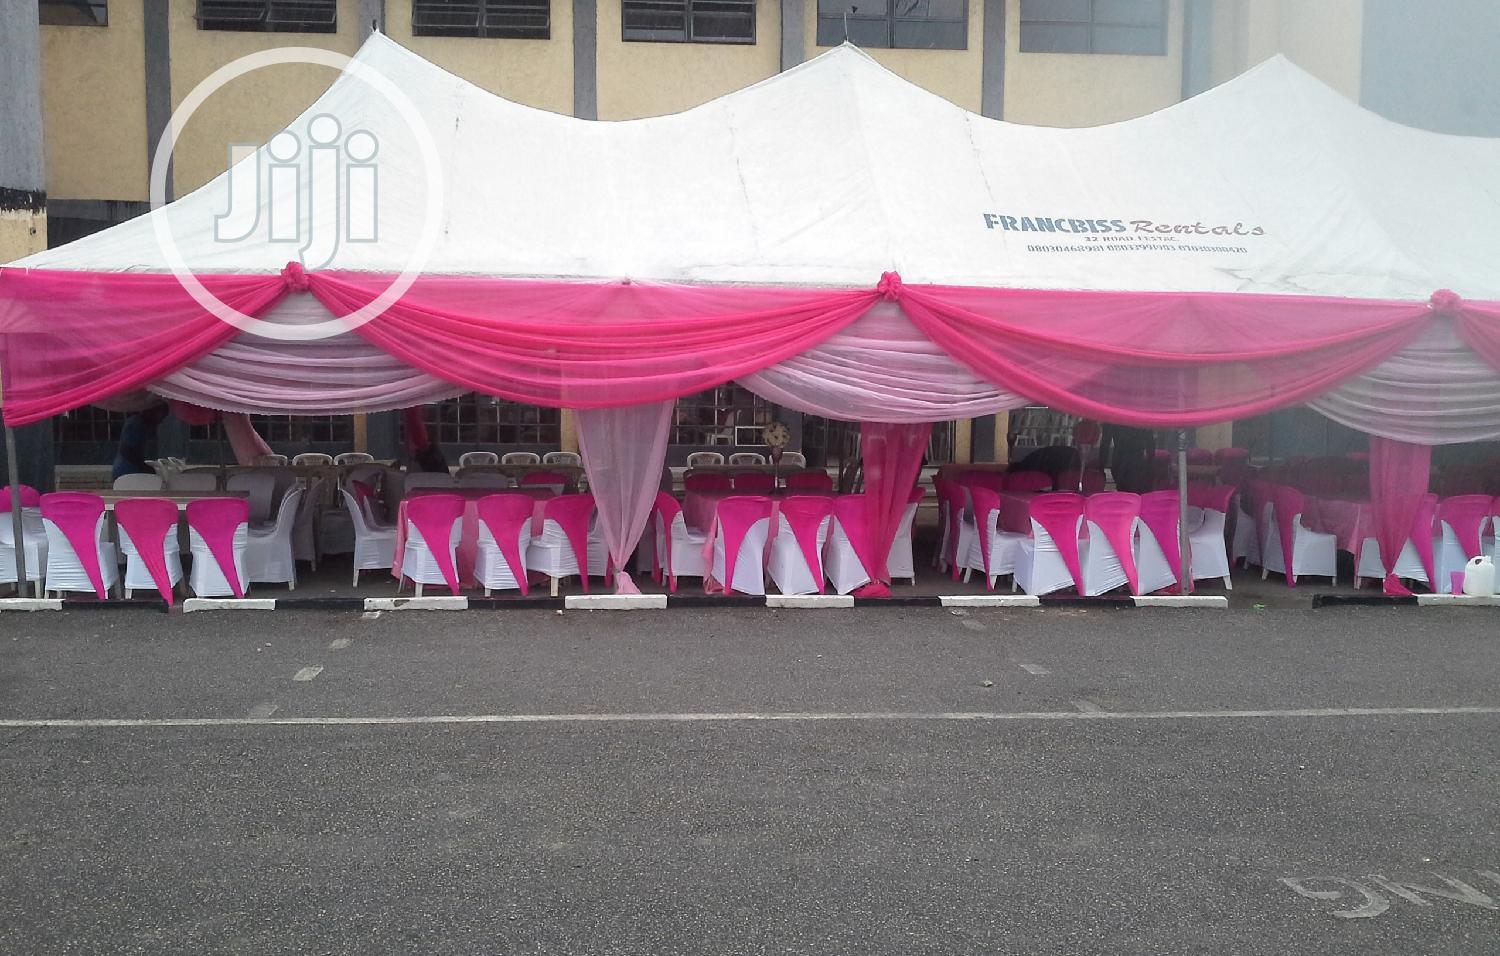 Tents And Canopies, Chairs And Tables For Rent